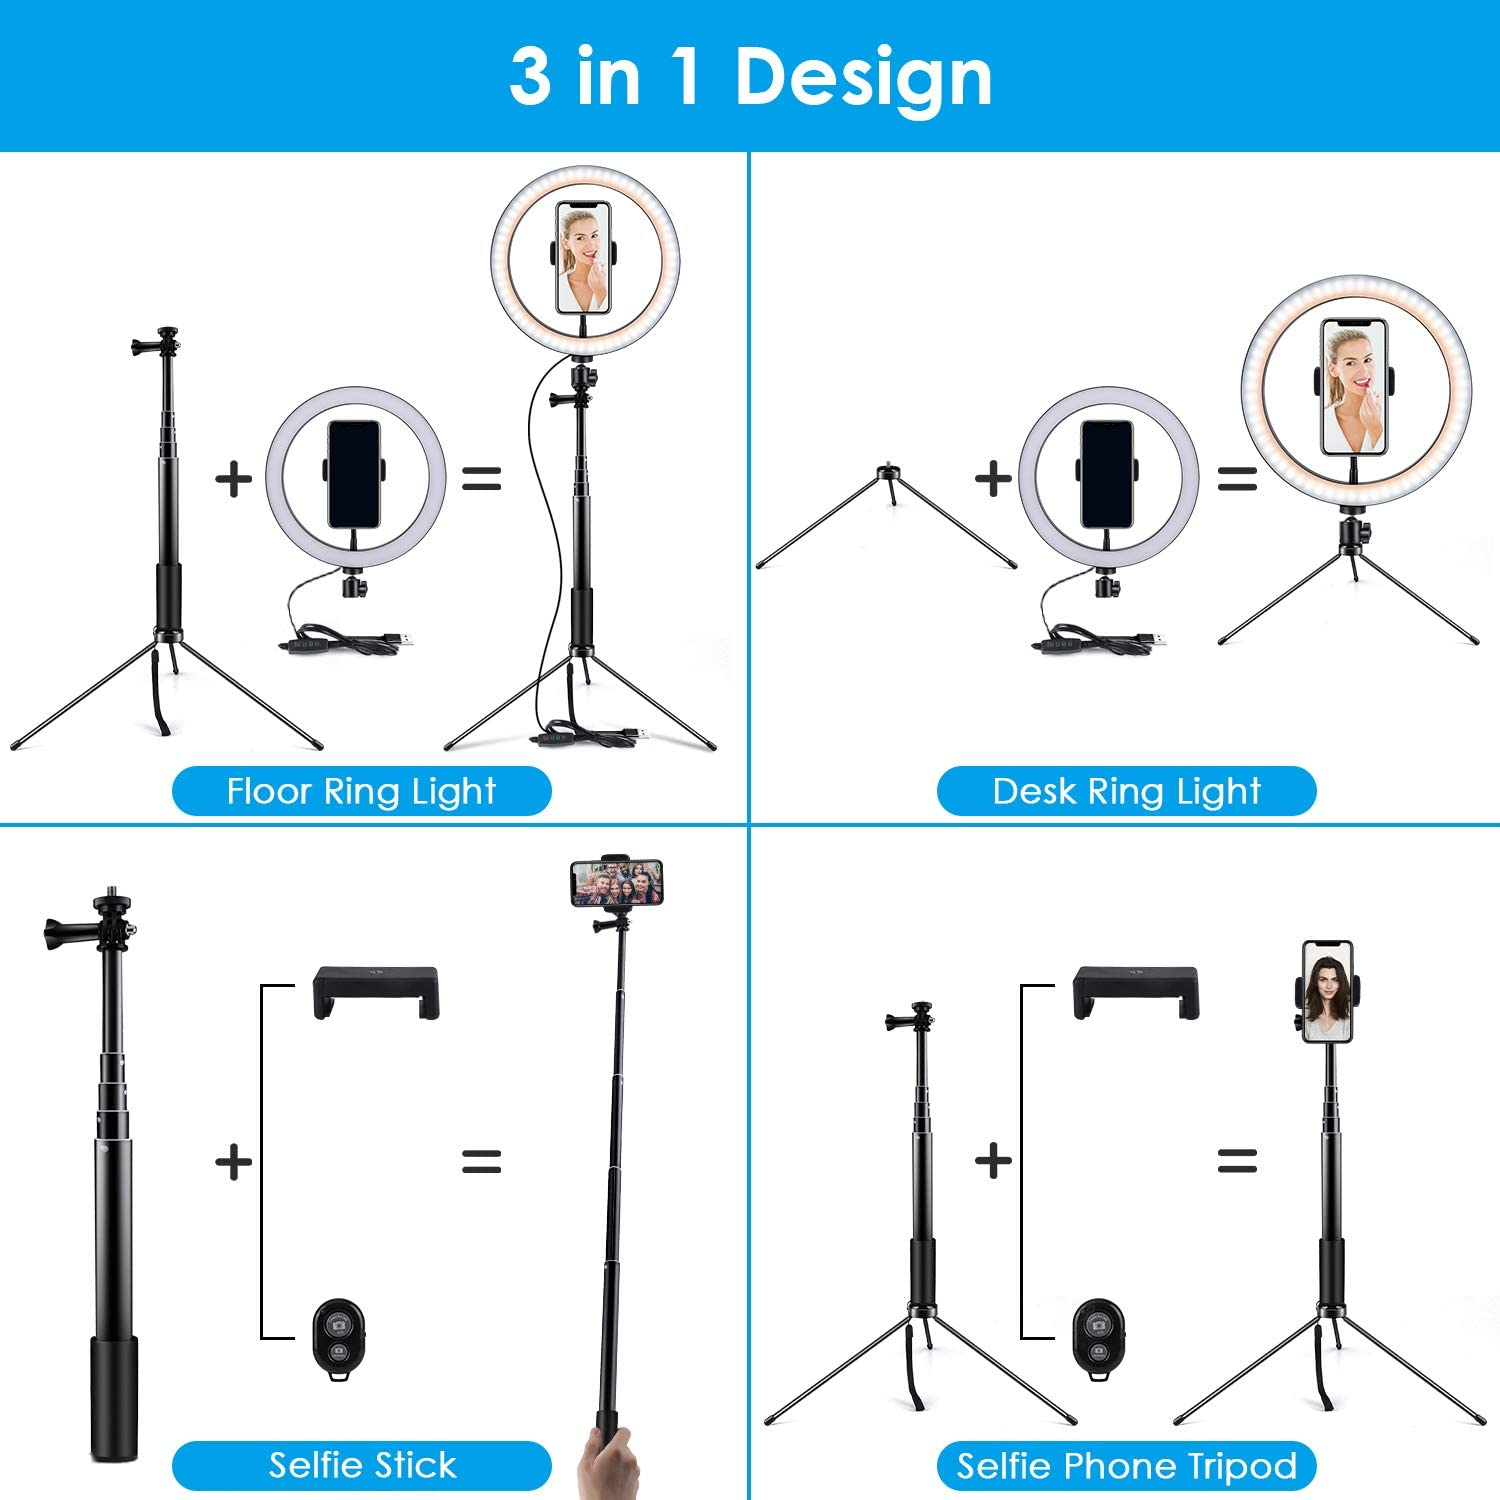 Remote Control 3 Modes /& 10 Brightness 120 Bulbs Dimmable Desktop Ringlight for YouTube Video//Live Stream//Makeup//Photography 14.56 to 65 Ring Light 10 Selfie Light Ring with Adjustable Bracket